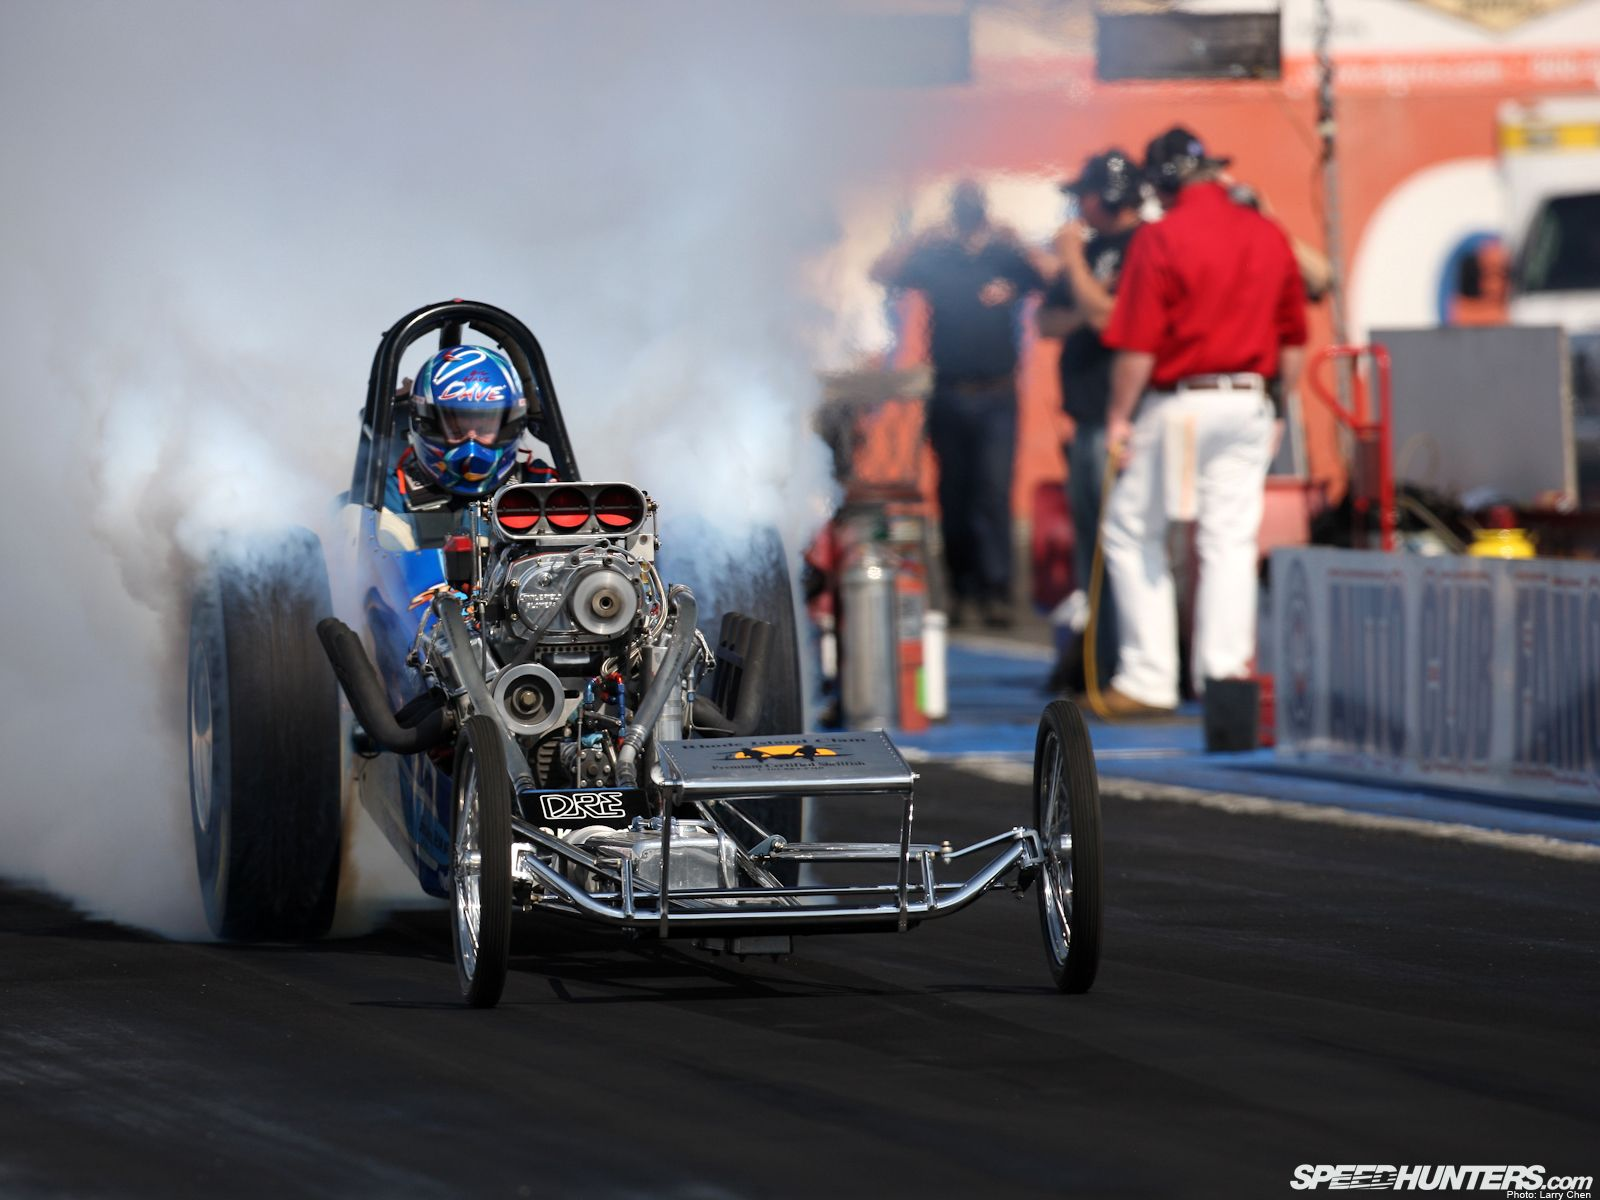 What 10k horsepower on a drag racing tire looks like : interestingasfuck